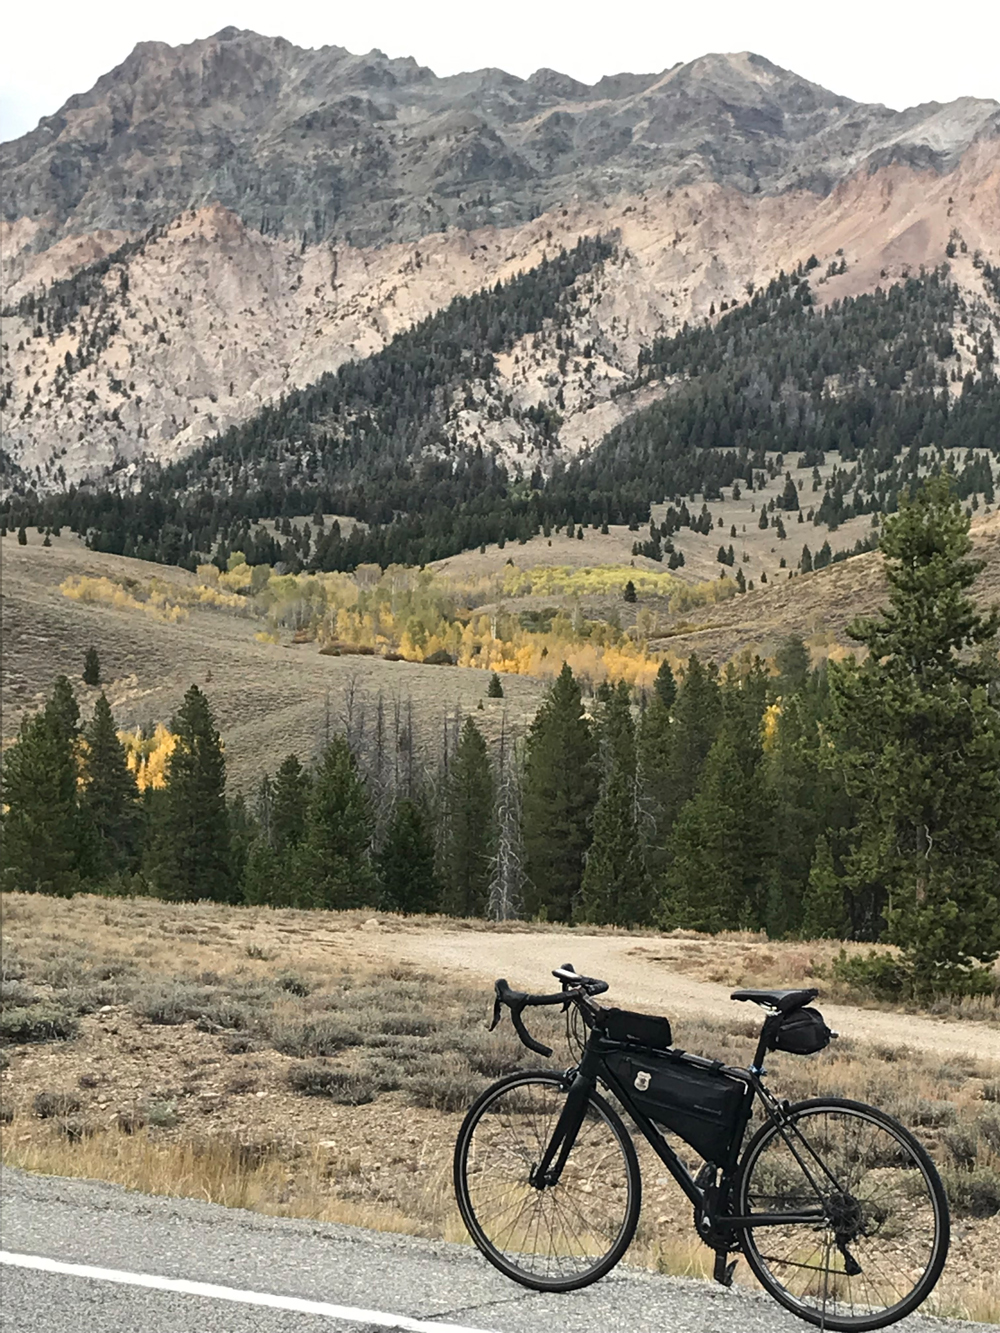 Sage, Sun Valley, and Sawtooths Ride. Photo by David Collins